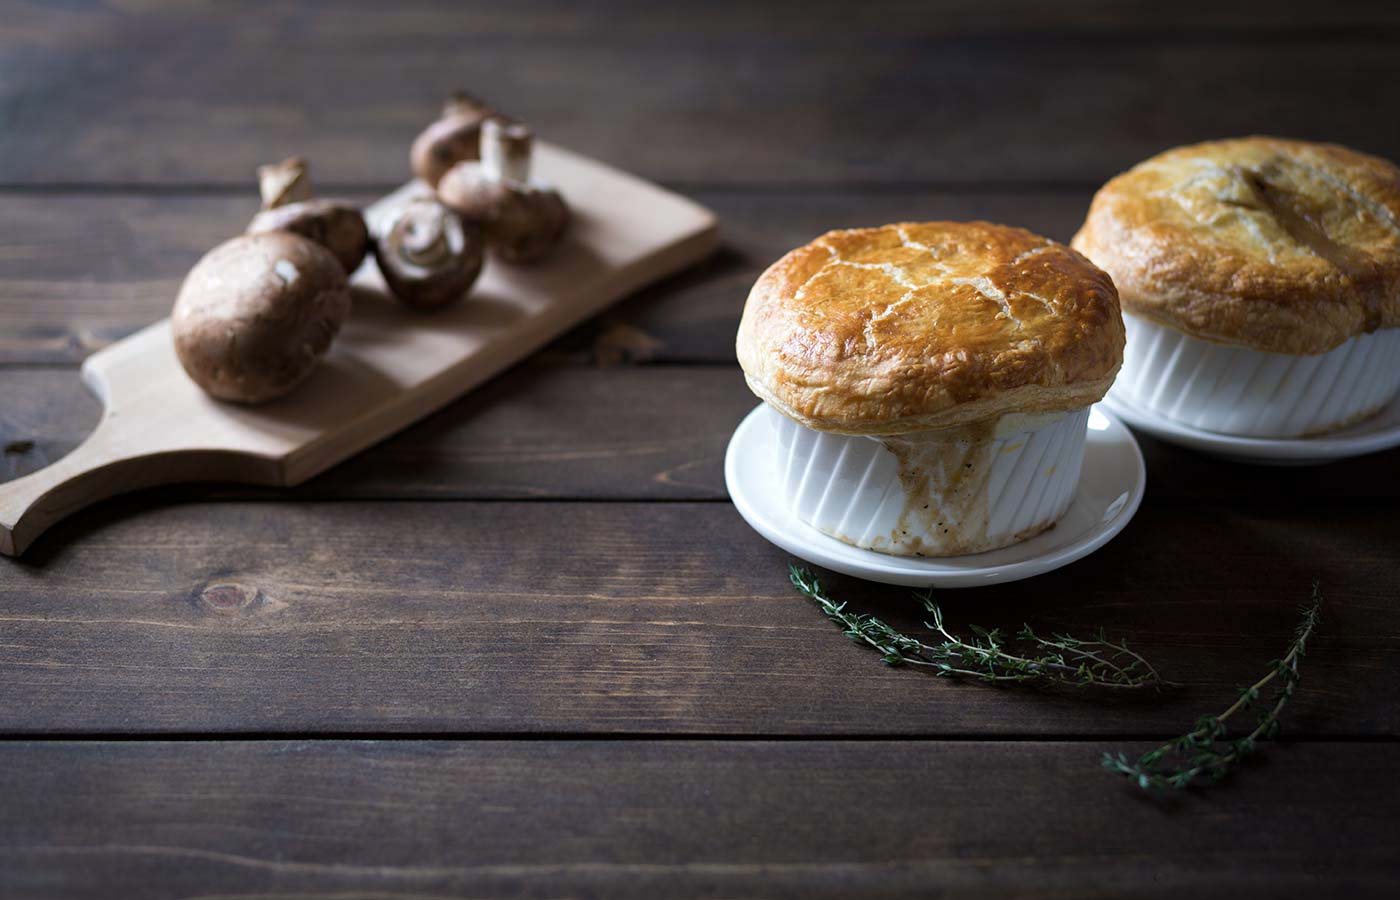 This rich, creamy Mushroom Pot Pie is topped with a flaky, tender, puff pastry crust. It's a cozy, make-ahead vegetarian meal. SavorySimple.net